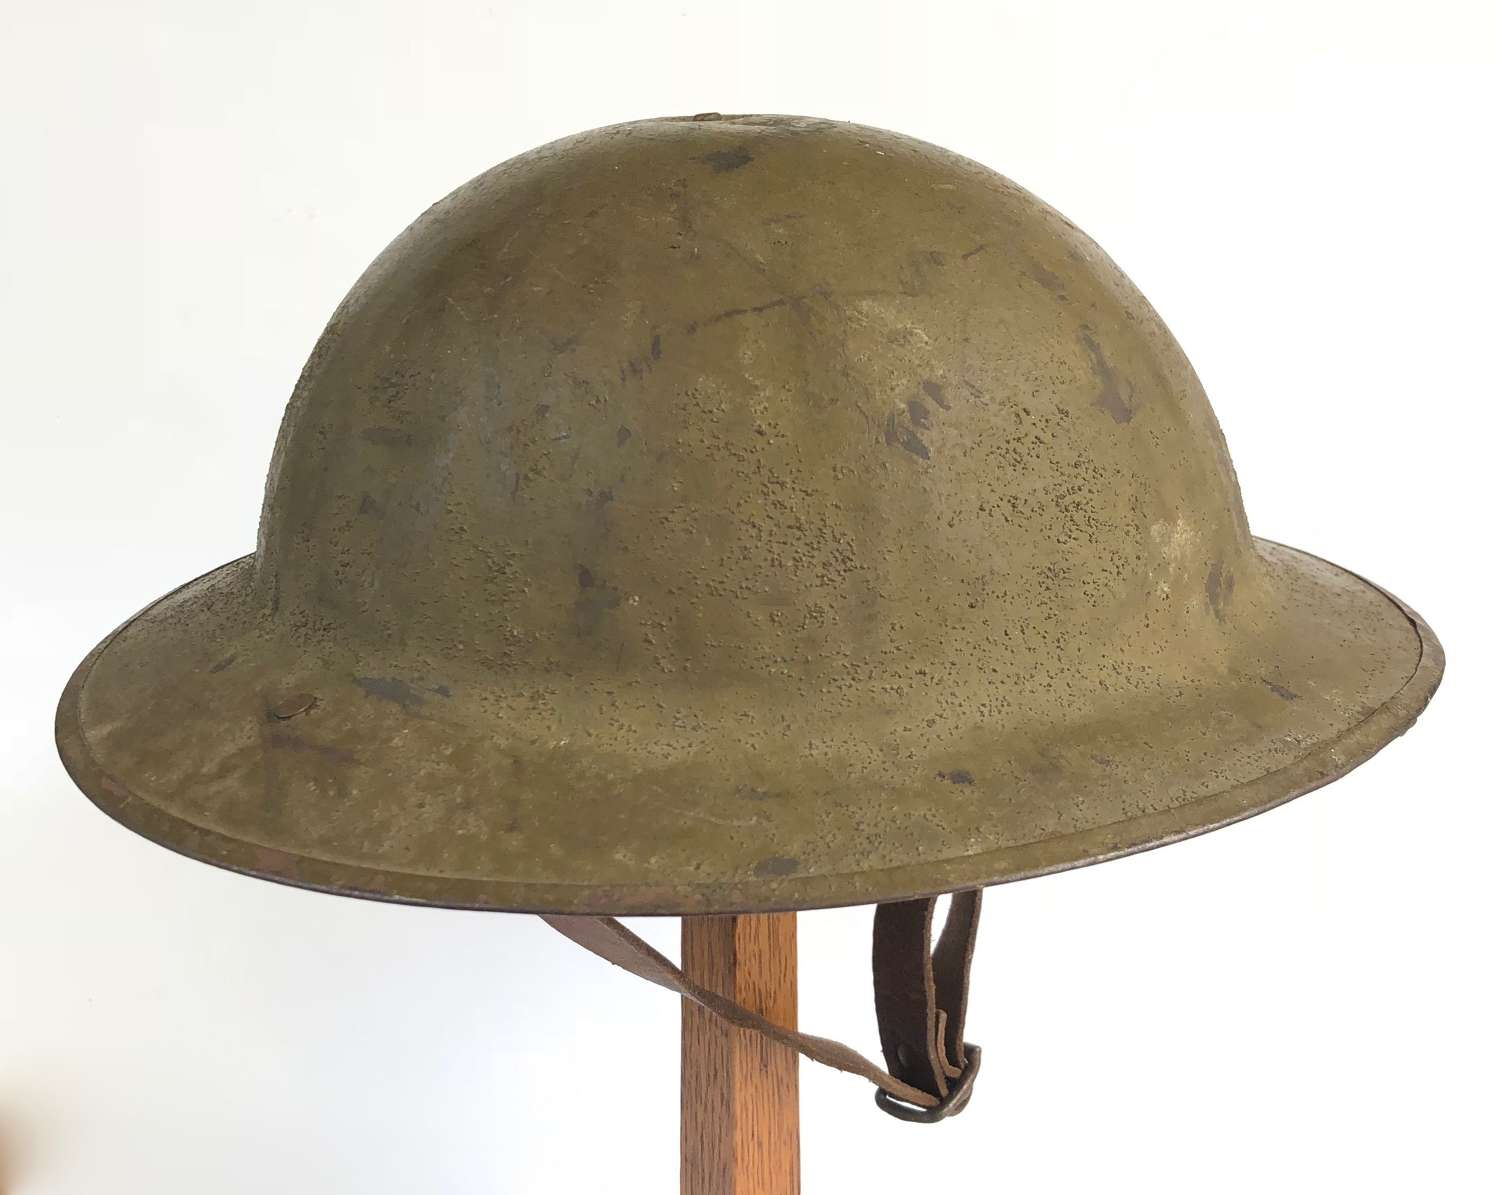 WW1 Superb British Army Issue Brodie Steel Helmet.